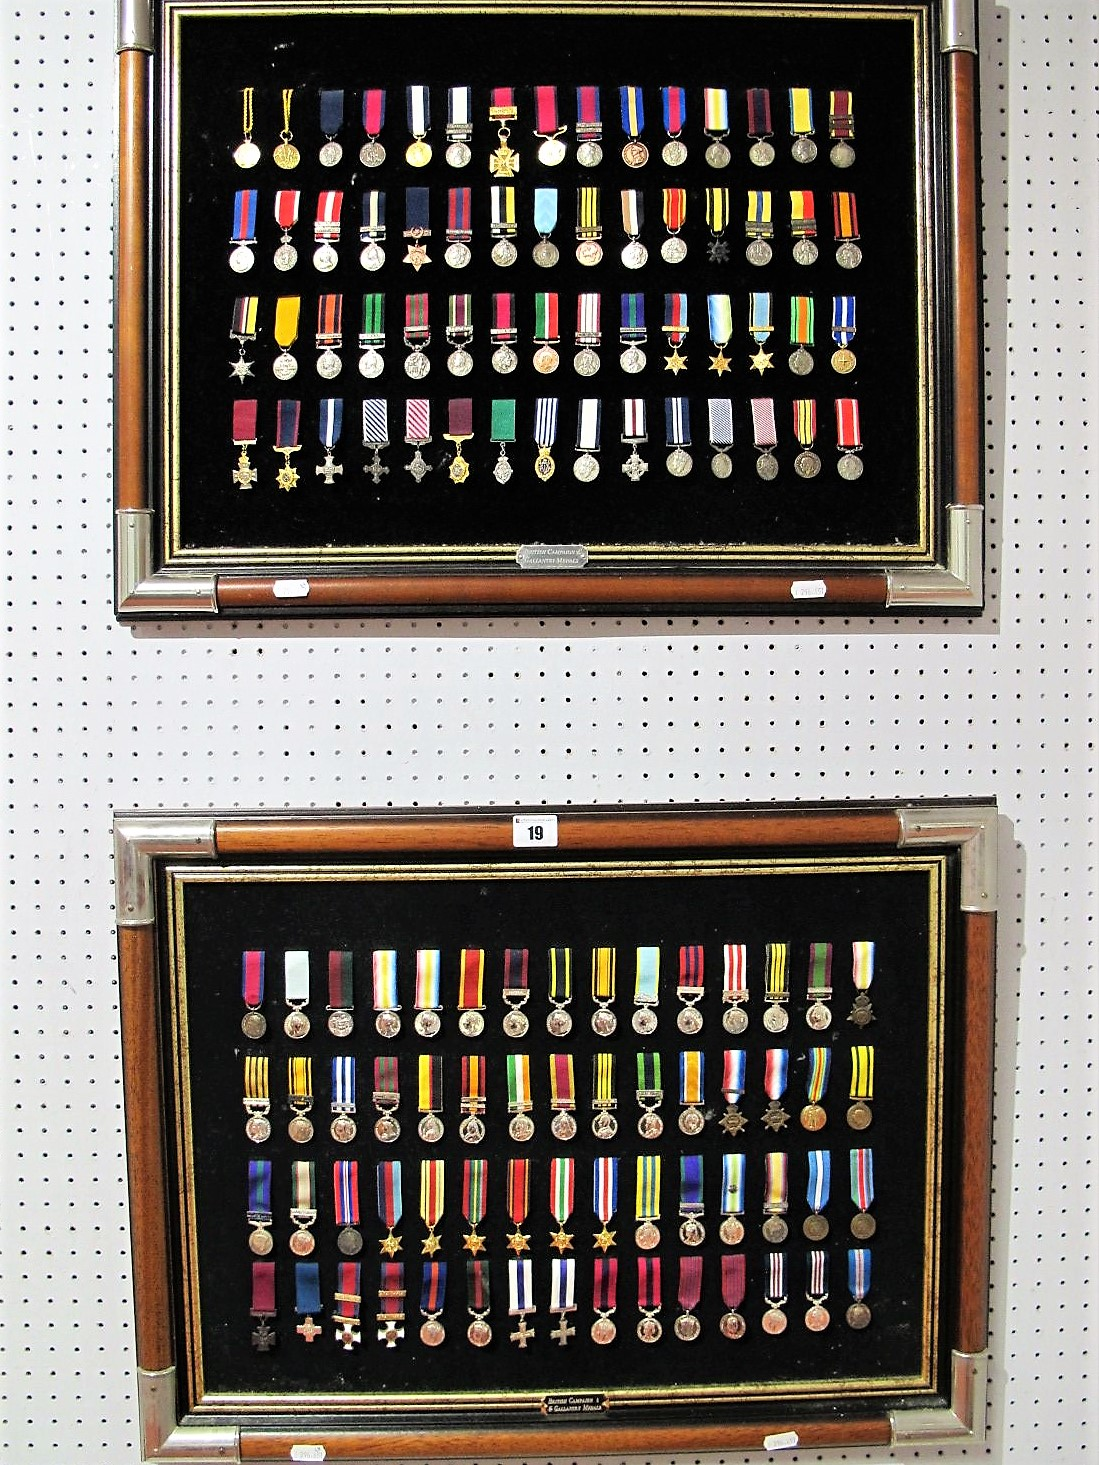 Lot 19 - A Large Collection of British Medal Miniatures, all reproduction on two picture frames.